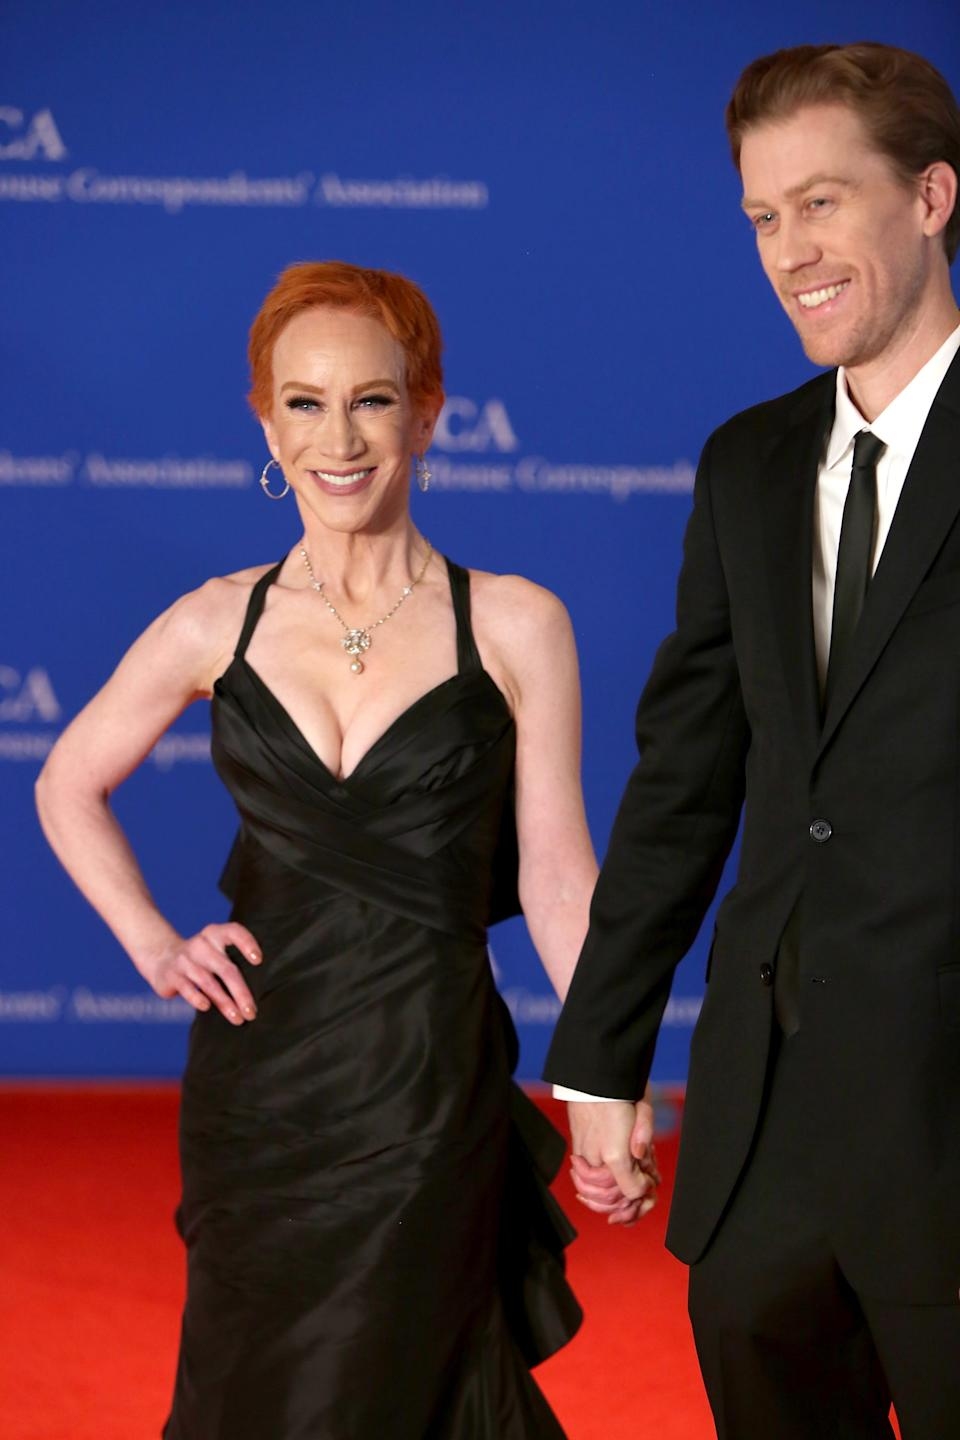 Kathy Griffin and Randy Bick attend the 2018 White House Correspondents' Dinner on April 28, 2018 in Washington, DC.